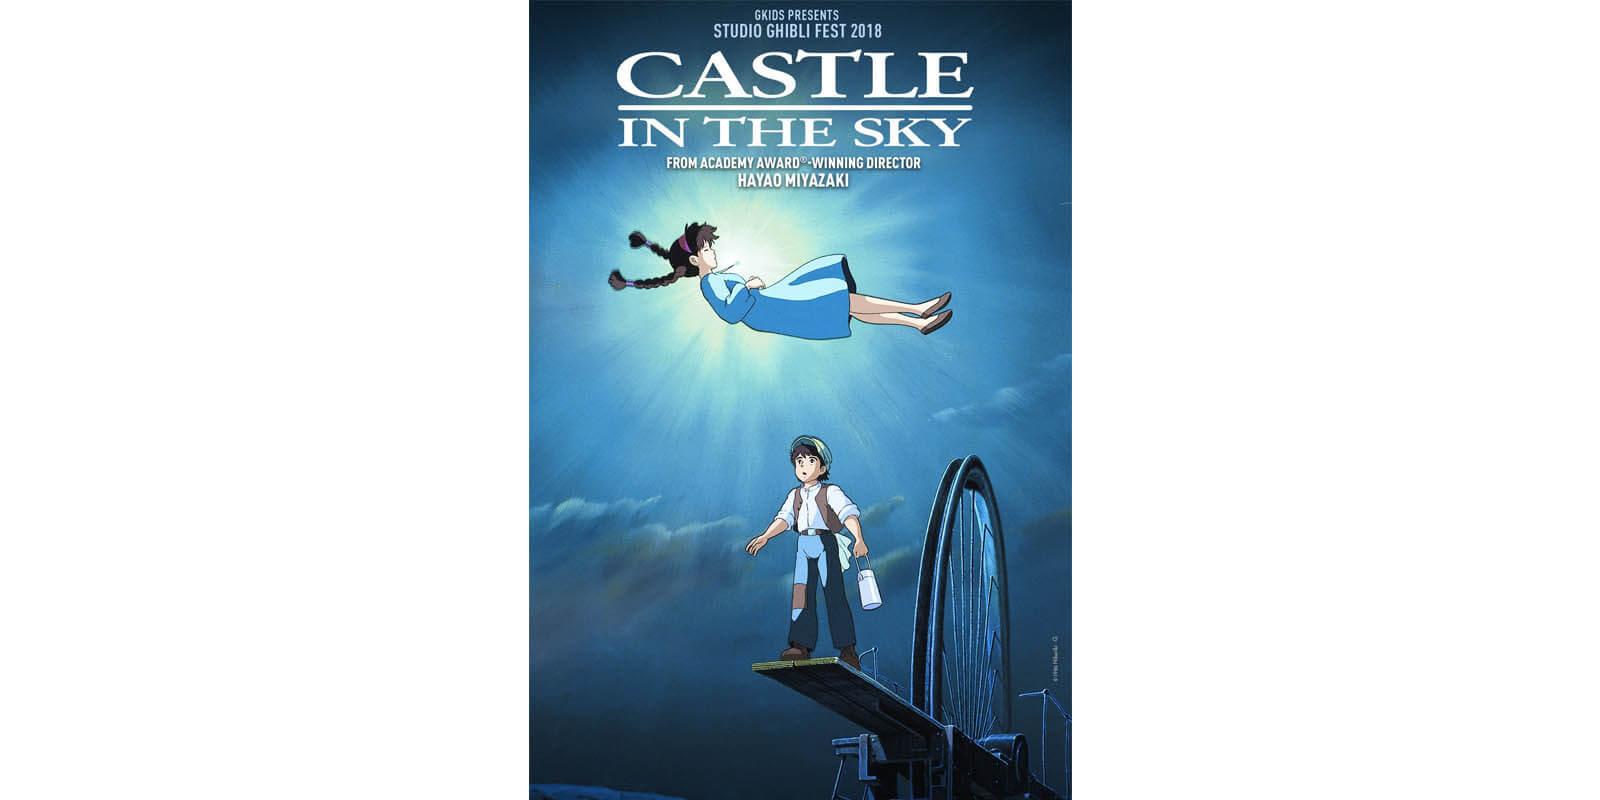 Castle in the Sky (Studio Ghibli Fest 2018)